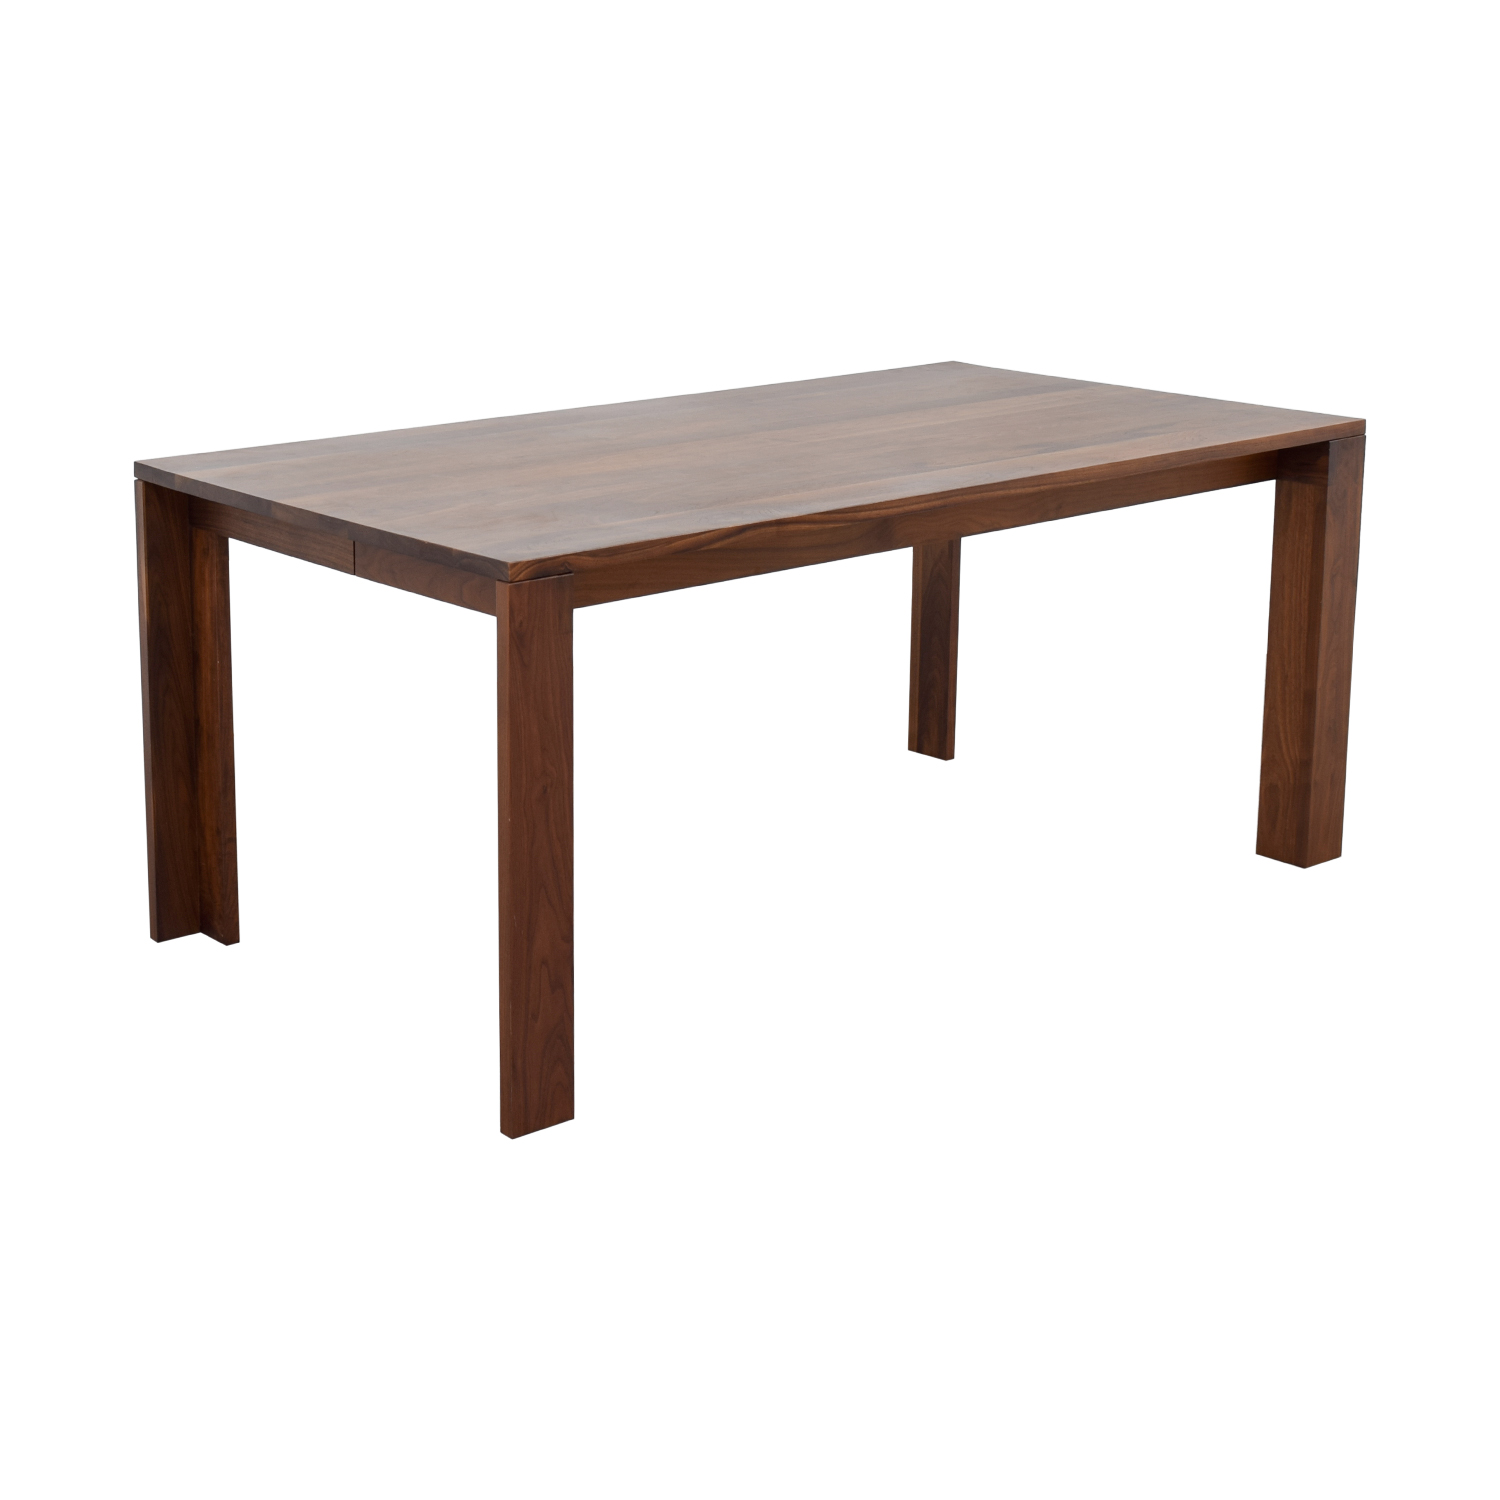 66 off design within reach dwr solid walnut dining table tables. Black Bedroom Furniture Sets. Home Design Ideas